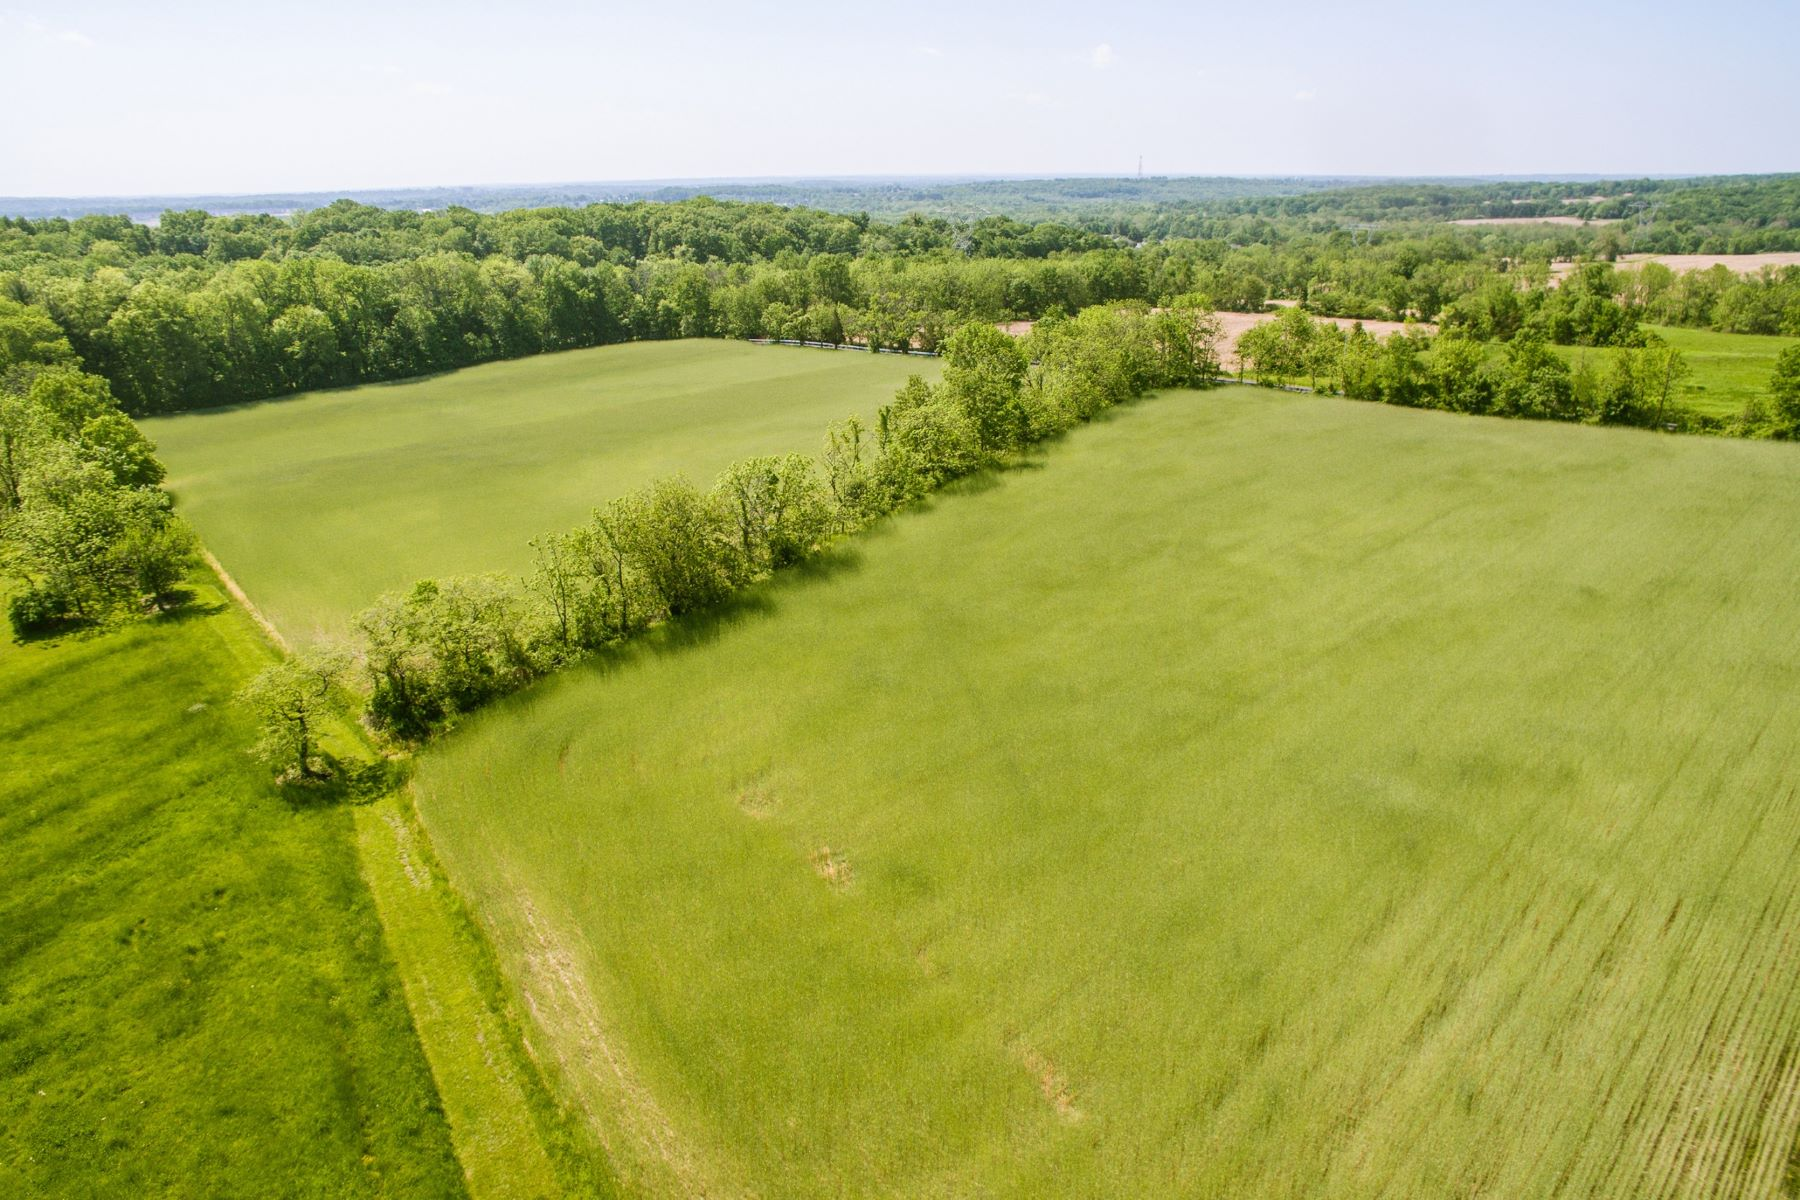 Land for Sale at 5839 Worthington Rd Doylestown, 18901 United States